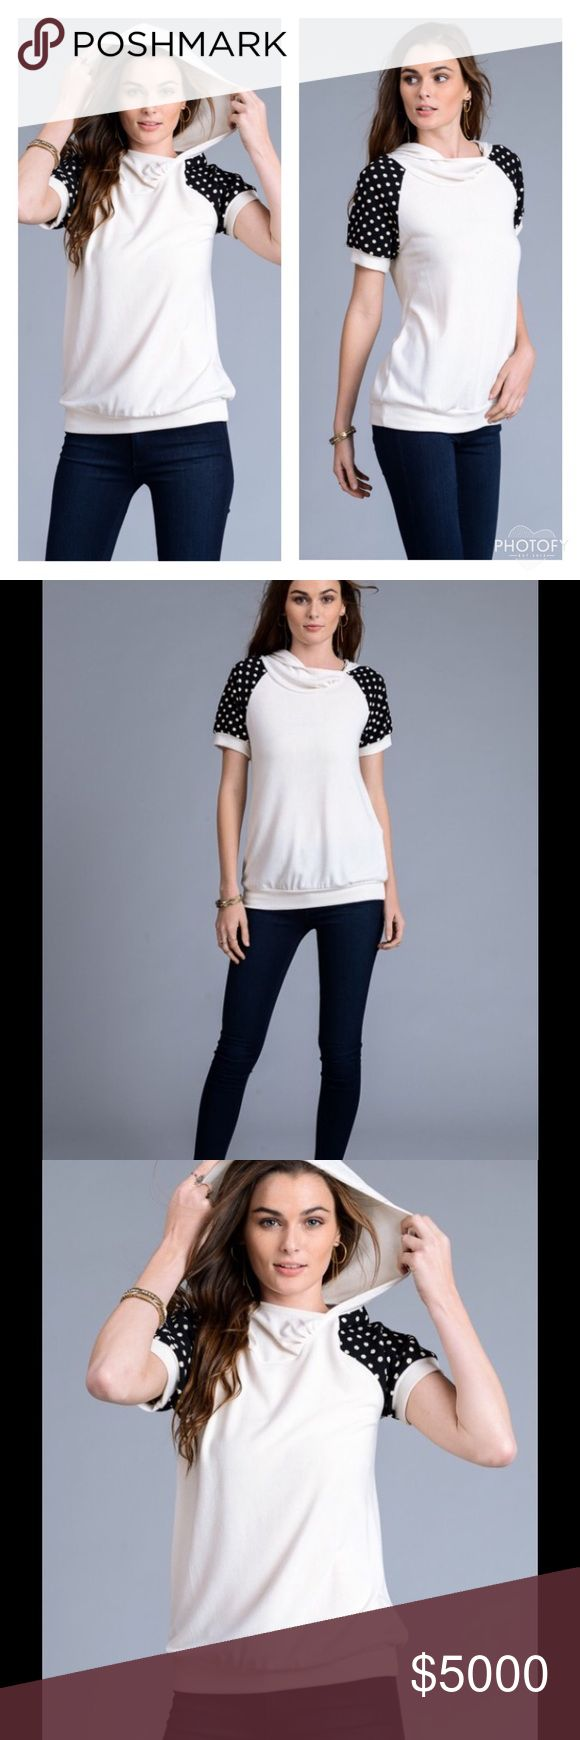 ⚡️SALE⚡️IVORY & BLACK HOODIE TOP WITH POLKA DOTS Chic & Comfy Polka Dot Top Hoodie  ❤Ivory with Polka Dots on Sleeves ❤Short Sleeves ❤Super Comfortable  ❤Hoodie ❤How Cute is this?  ❤Sizes S, M, L ❤Polyester/Rayon/Spandex  NO TRADES Peach Couture Tops